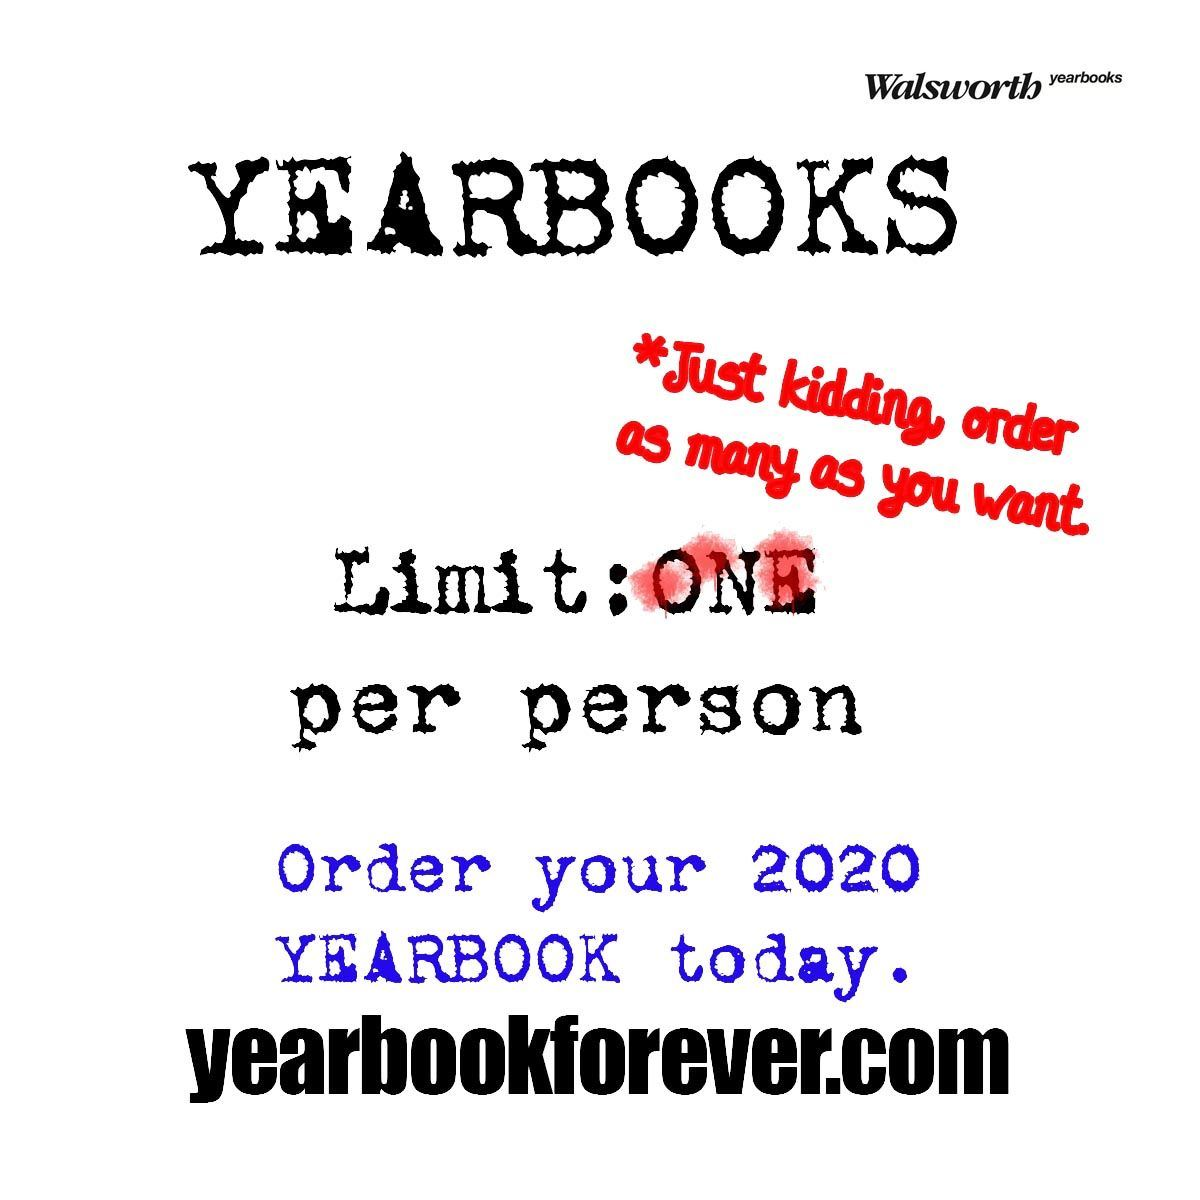 The Excalibur yearbook can still be purchased by visiting yearbookforever.com.  A limited number of books are available and delivery will be the first week in May.  Details about how to pick up your yearbook will be announced at a later date.  Contact Dr.